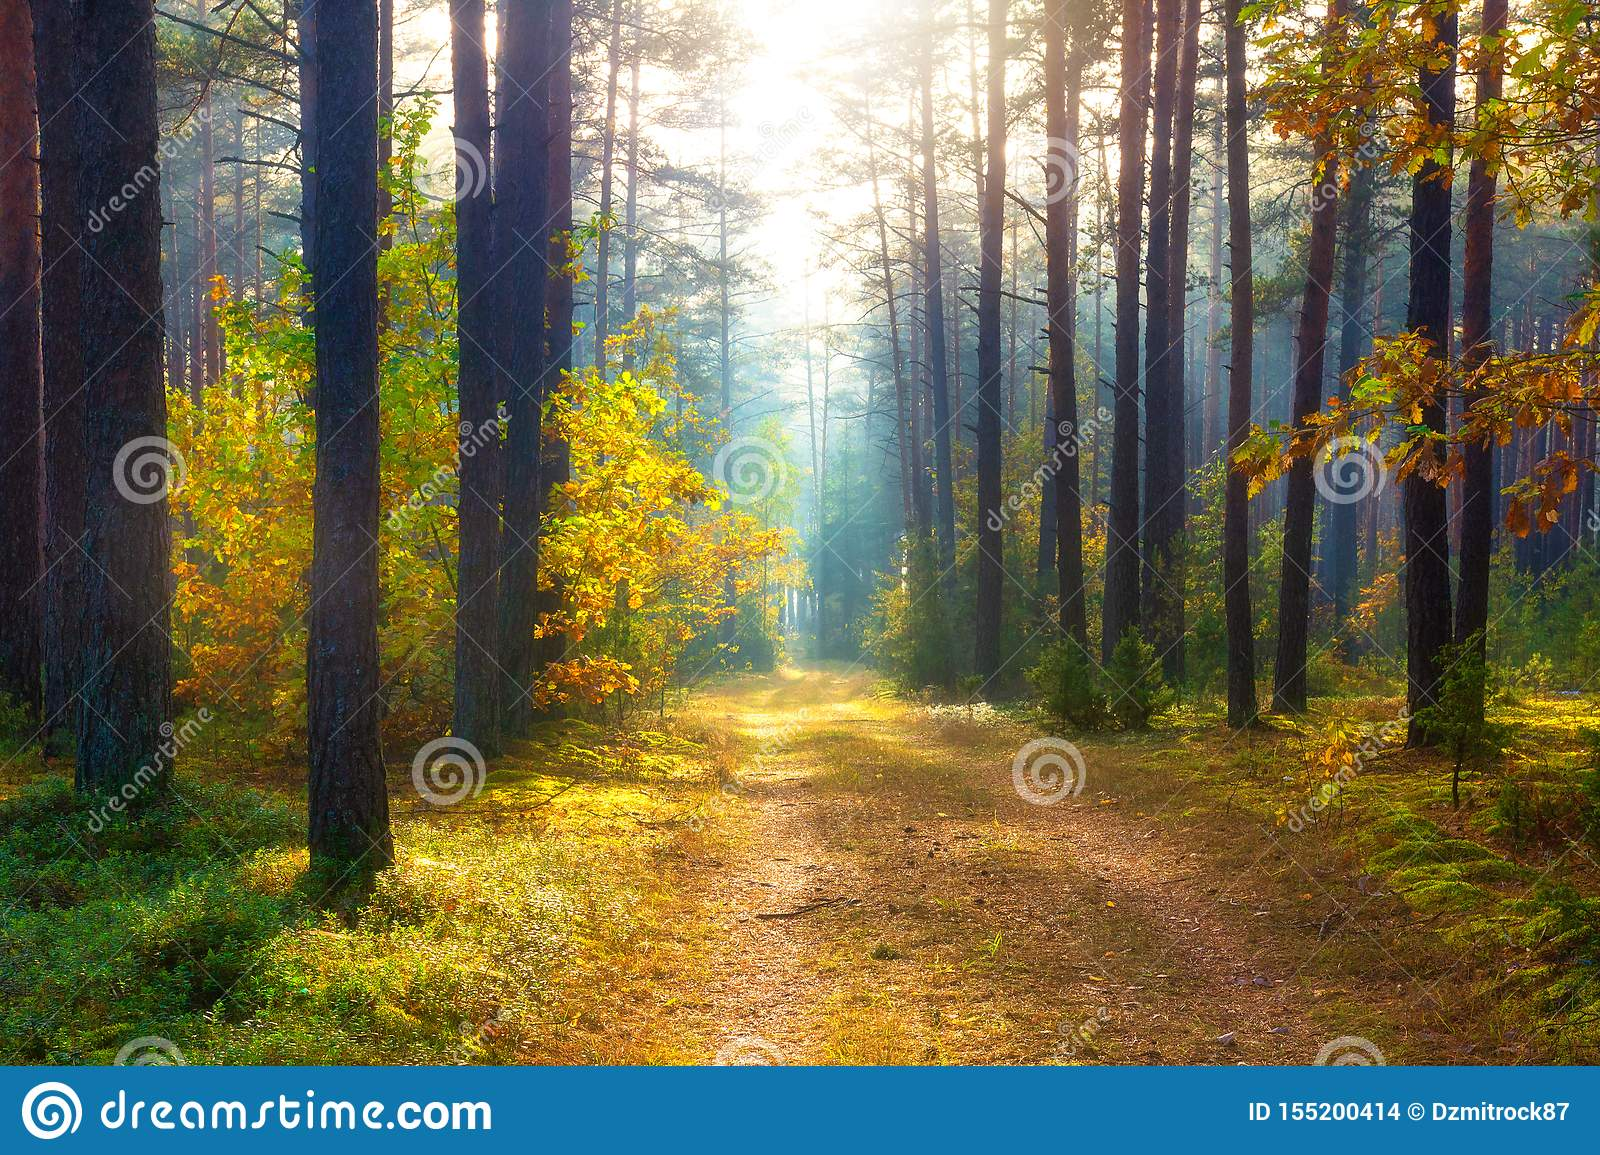 Sunny autumn forest. Scenery forest. Fall. Trees in sunlight. Autumn nature landscape